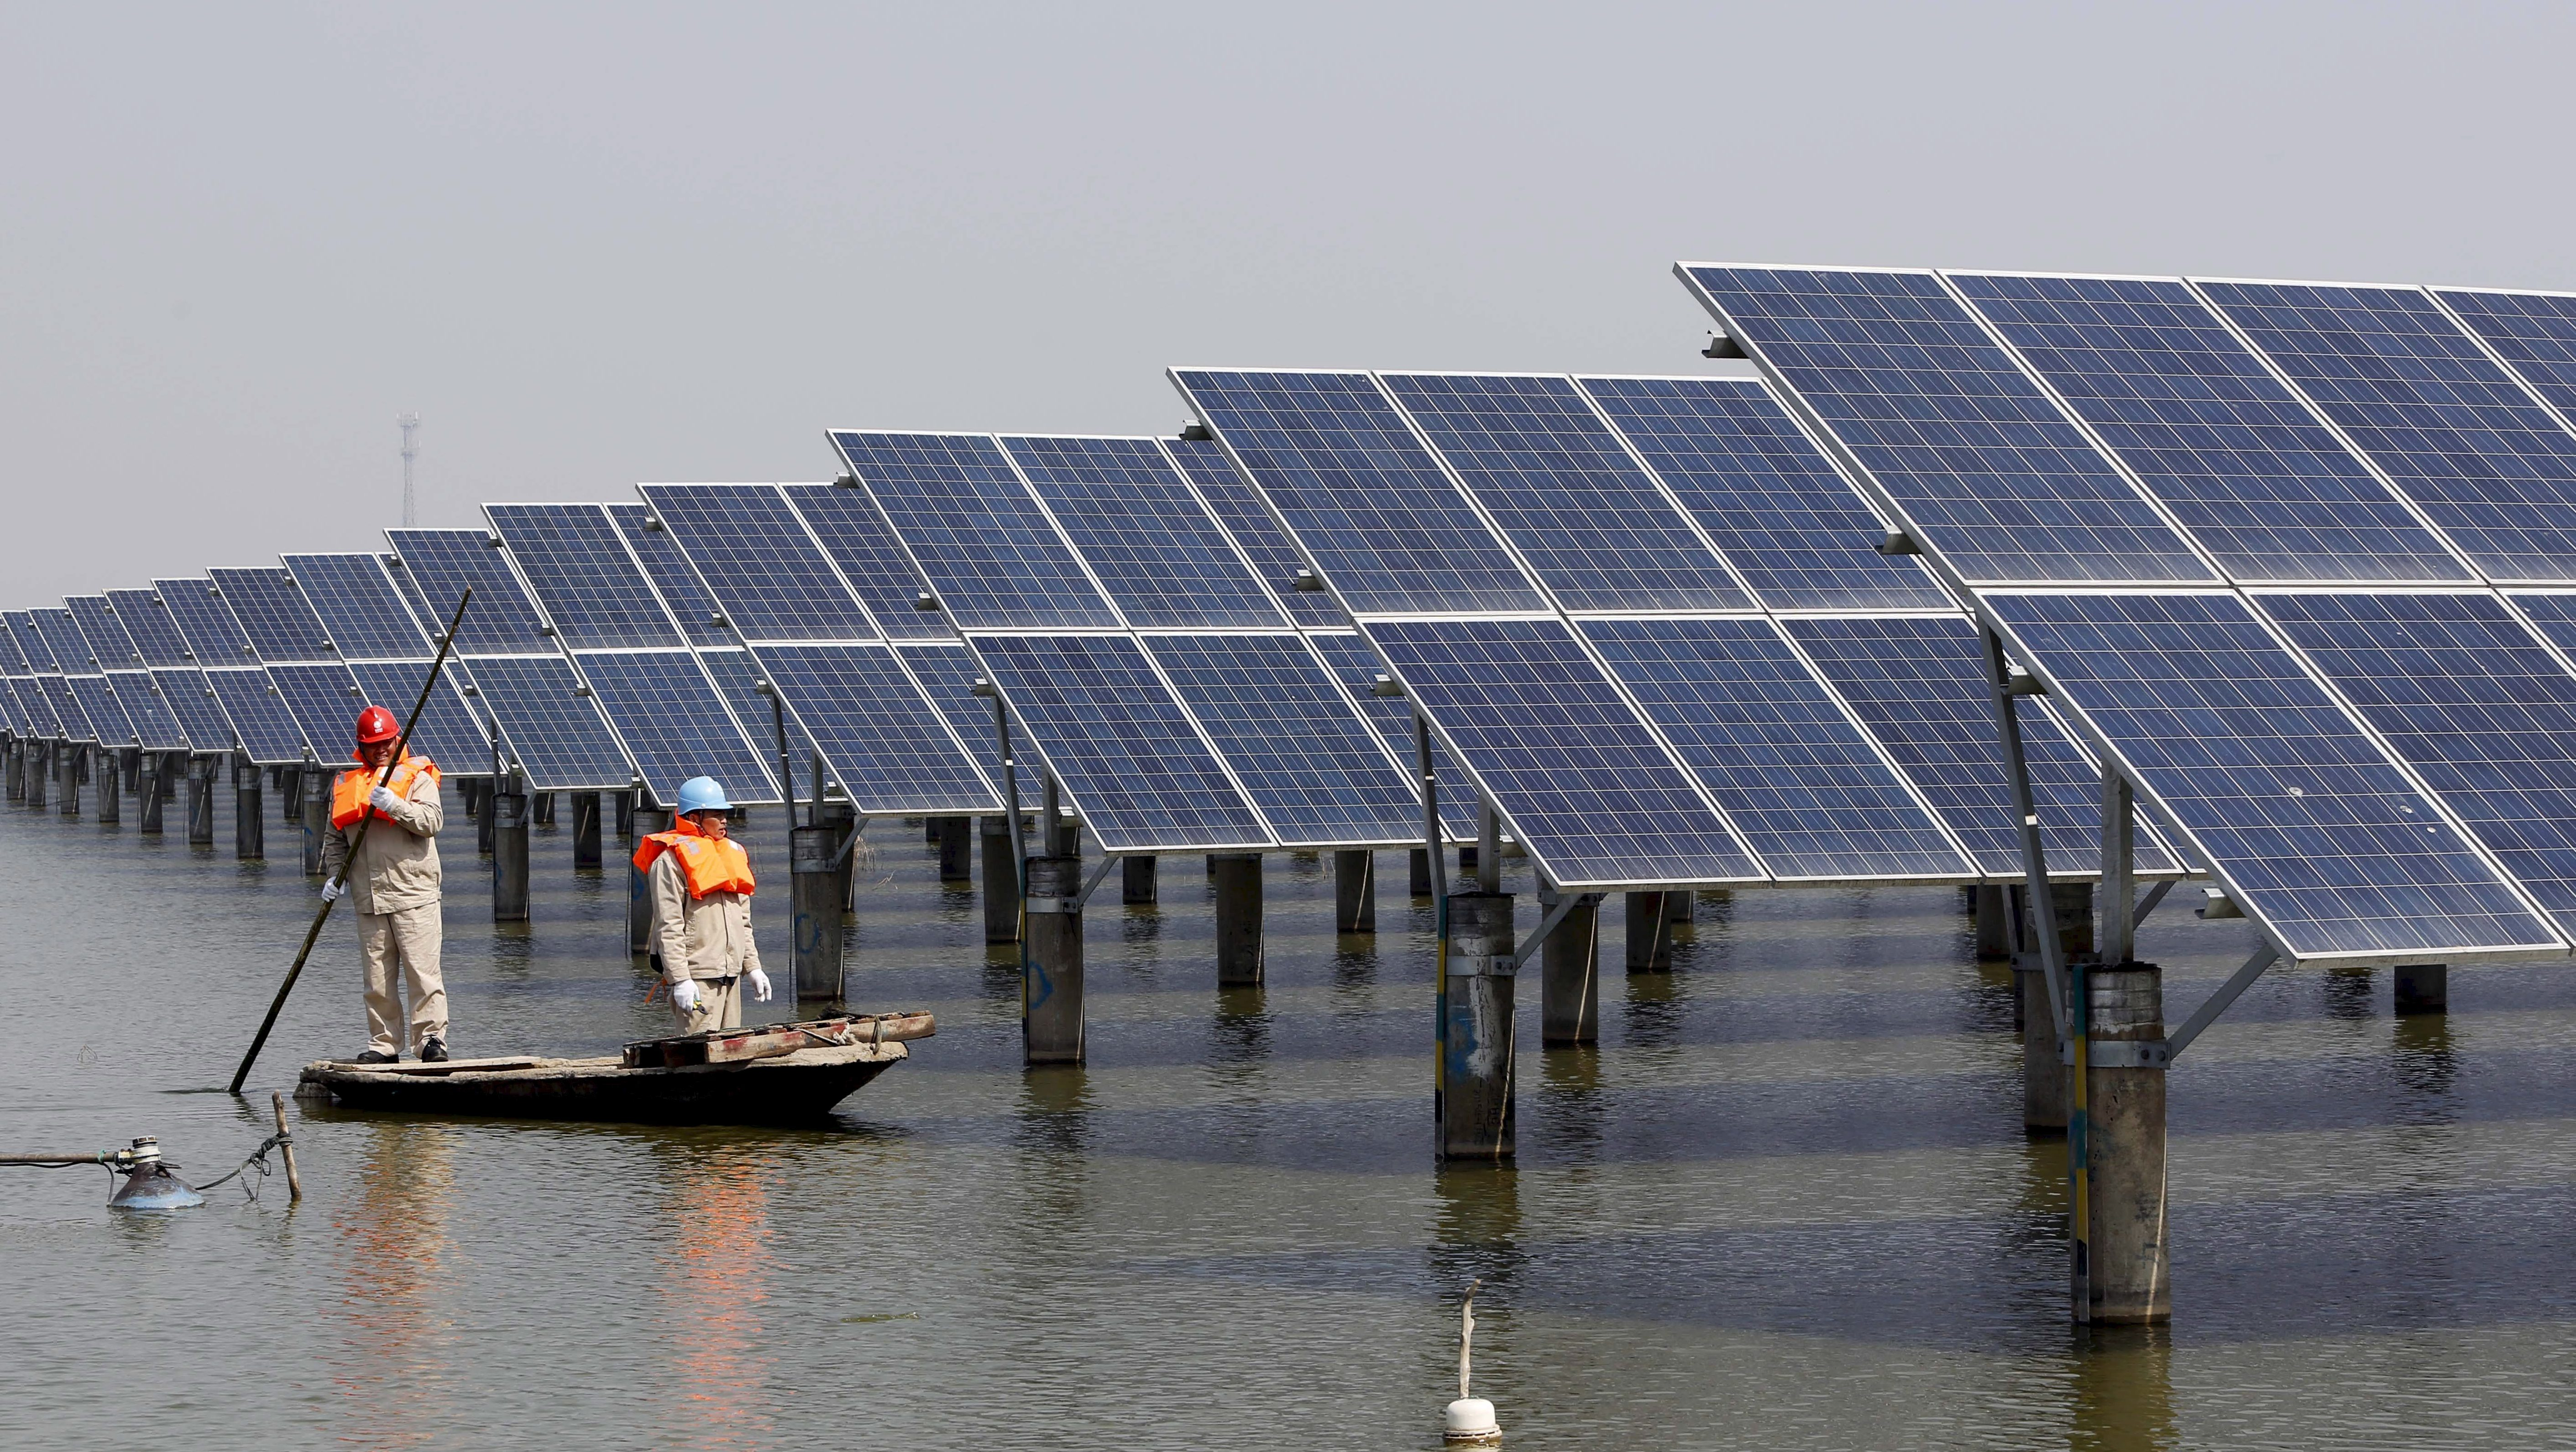 Employees row a boat as they examine solar panel boards at a pond in Lianyungang, Jiangsu Province, China, in this March 16, 2016 file photo. Global funds are cautiously venturing back into Chinese equities after prices collapsed to 4-1/2-year lows in February, taking advantage of cheaper valuations to buy stocks they believe will benefit from China's shift to a consumption-led economy.